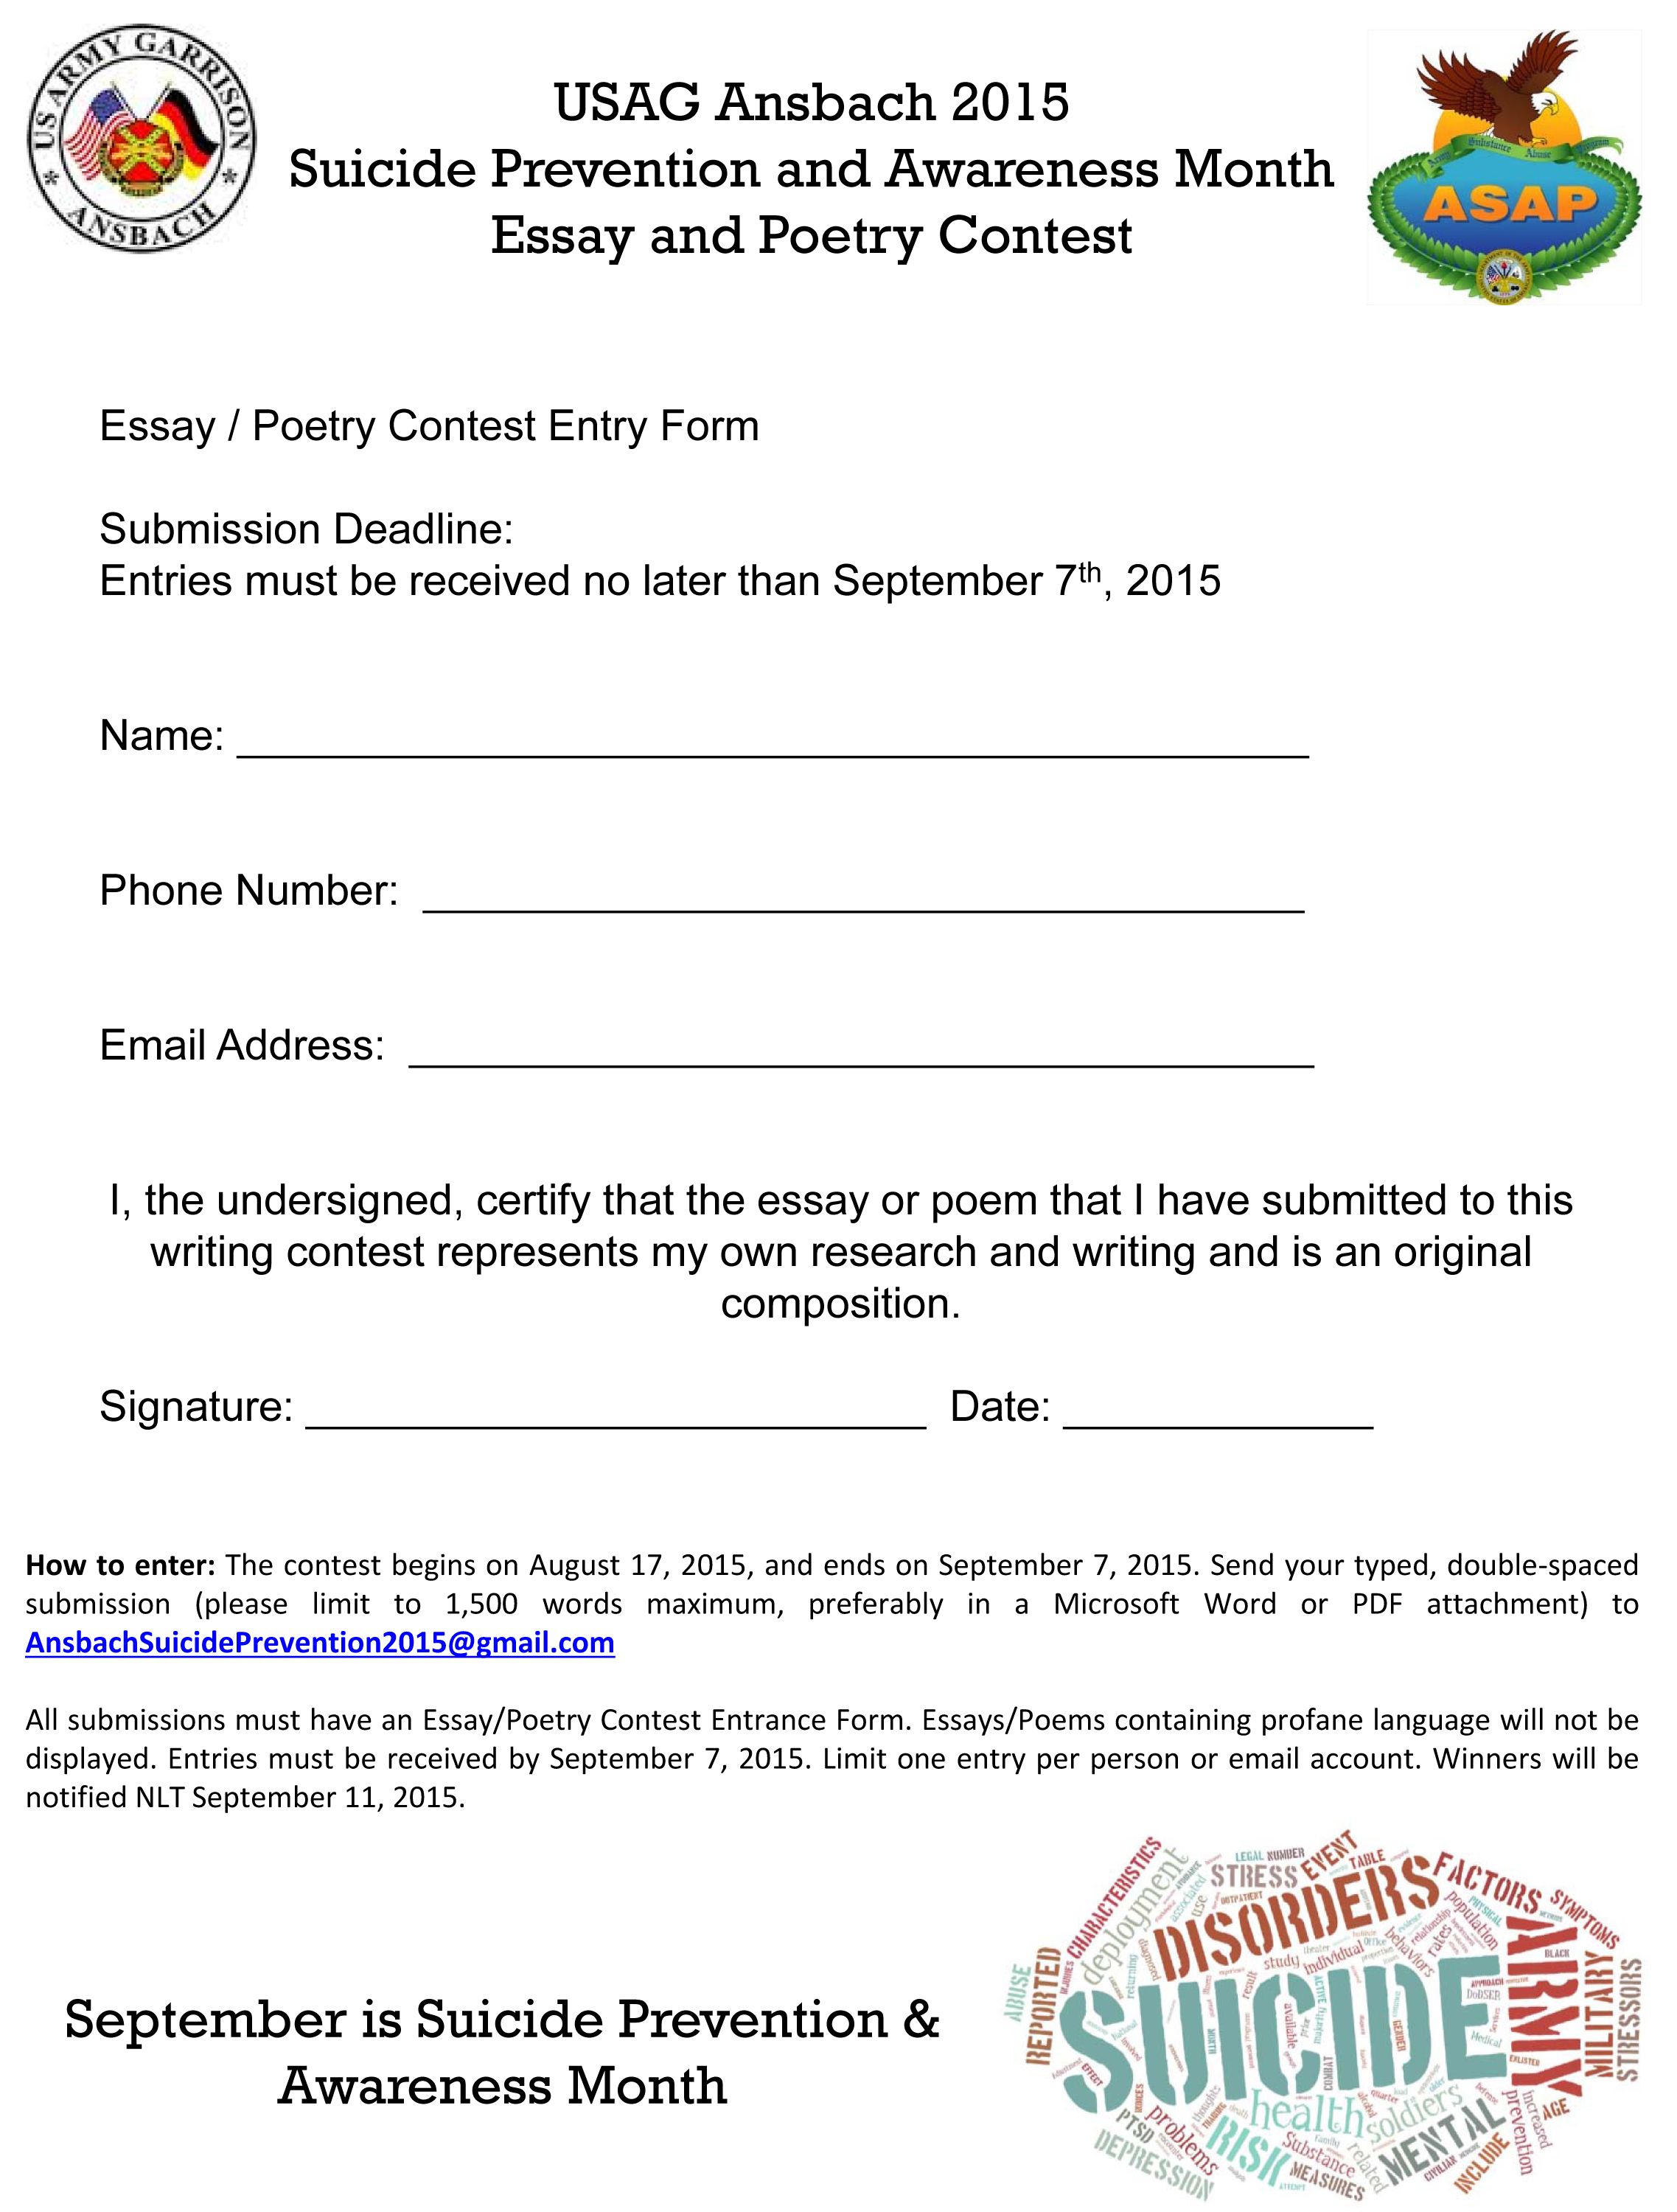 asap hosts suicide prevention month poetry essay contest ansbach  click image to enlarge